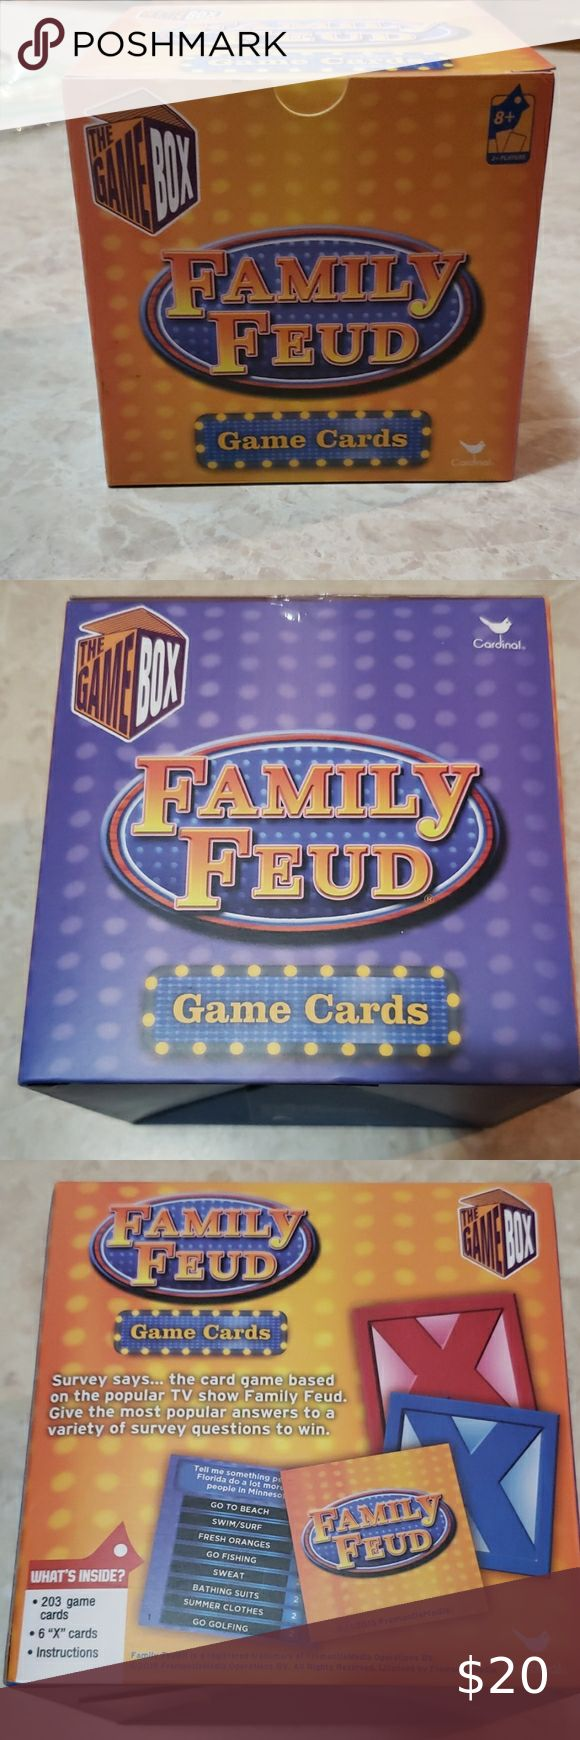 Family Feud Game Cards in 2020 Family feud game, Family